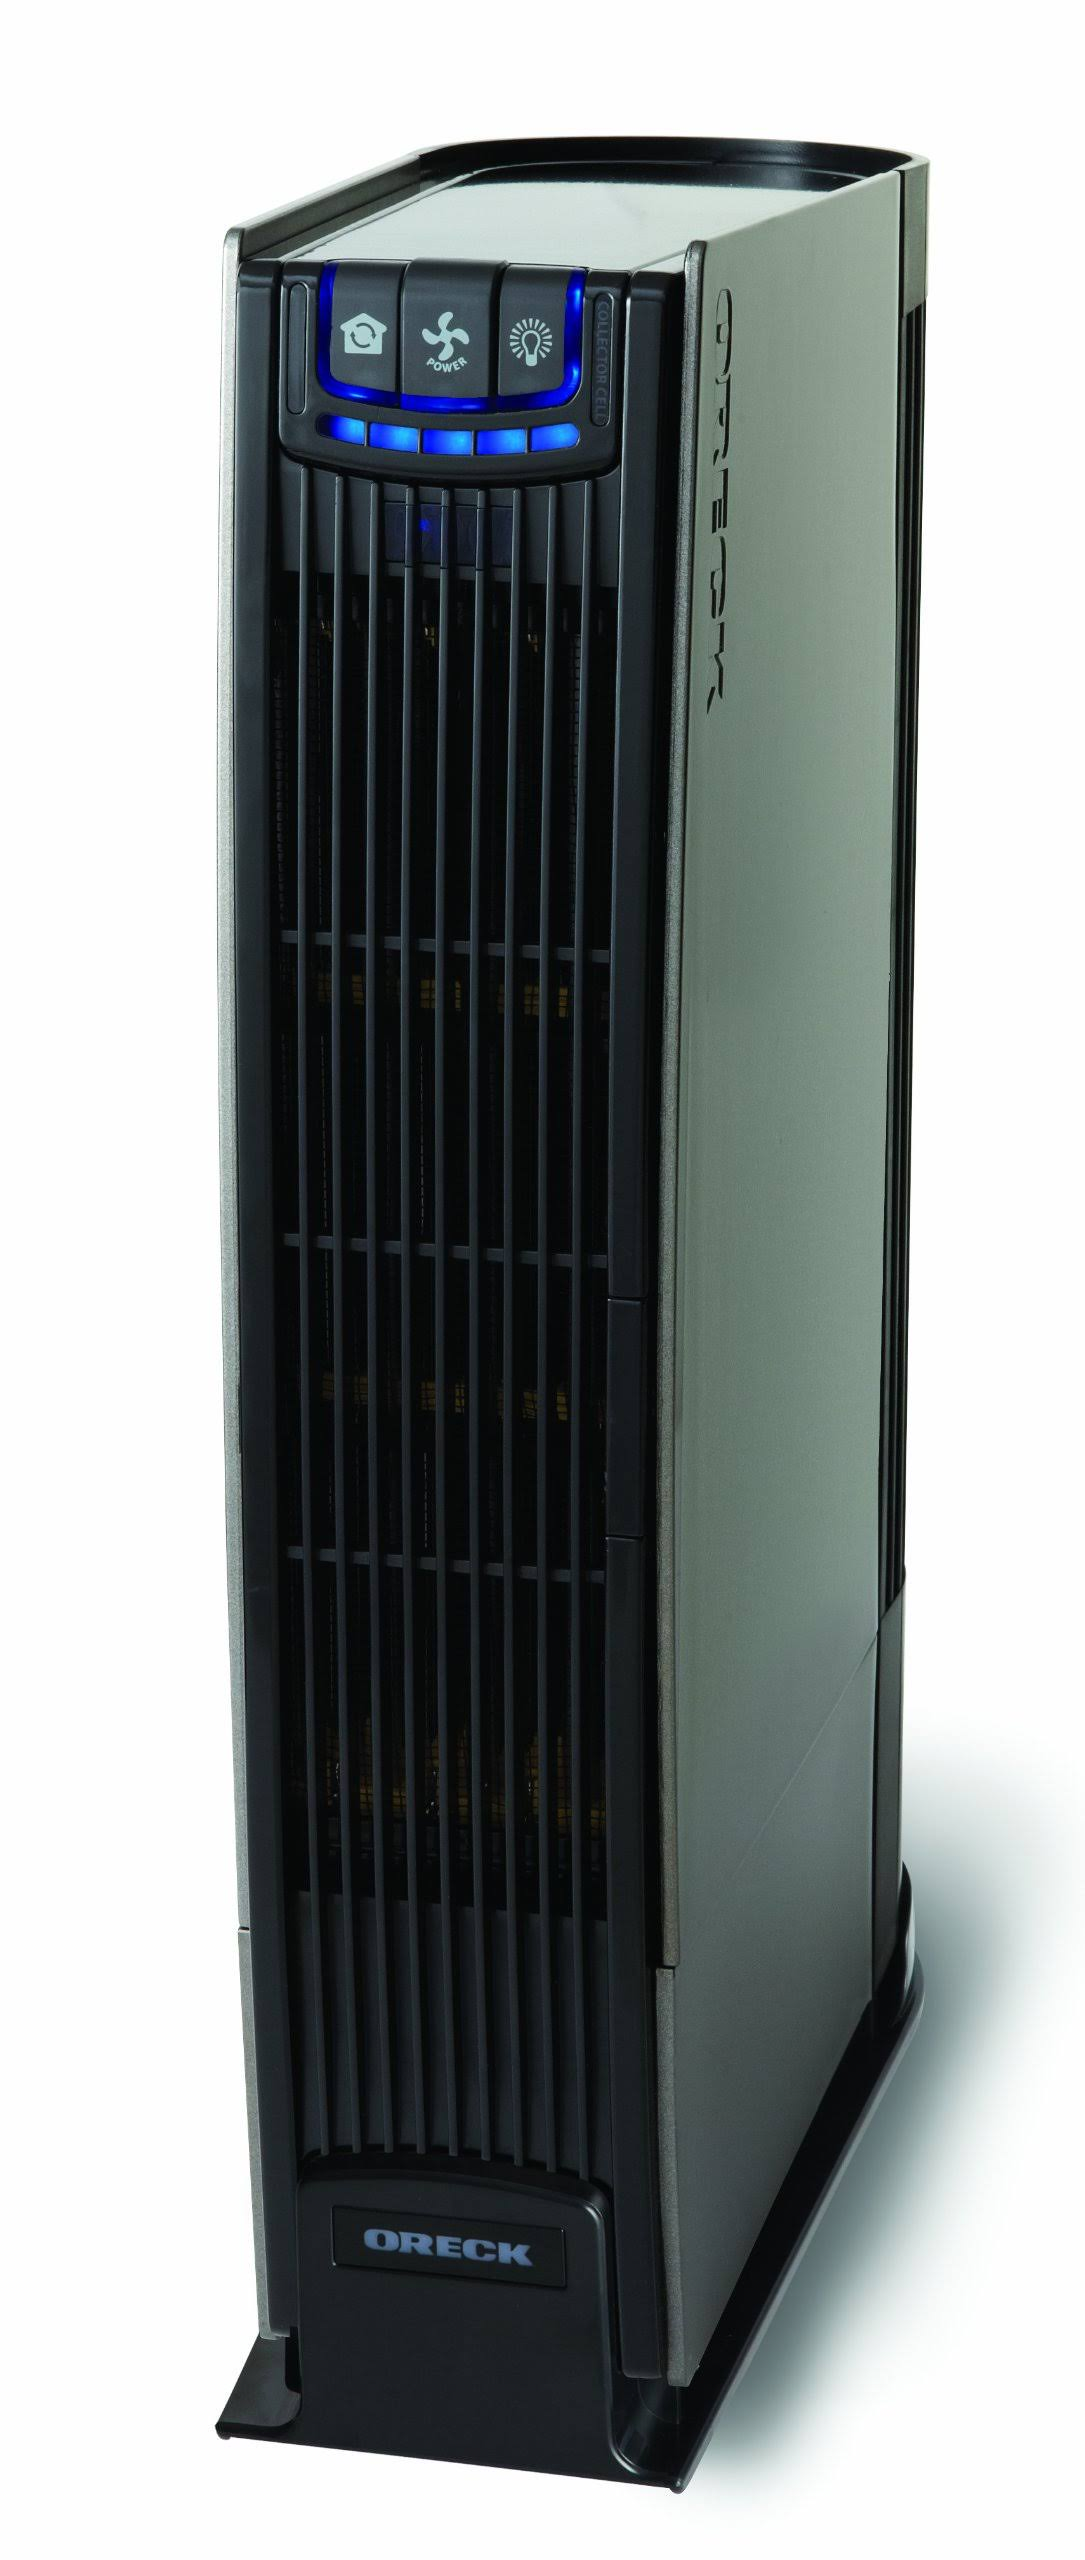 Oreck Proshield Plus Air Purifier - Black